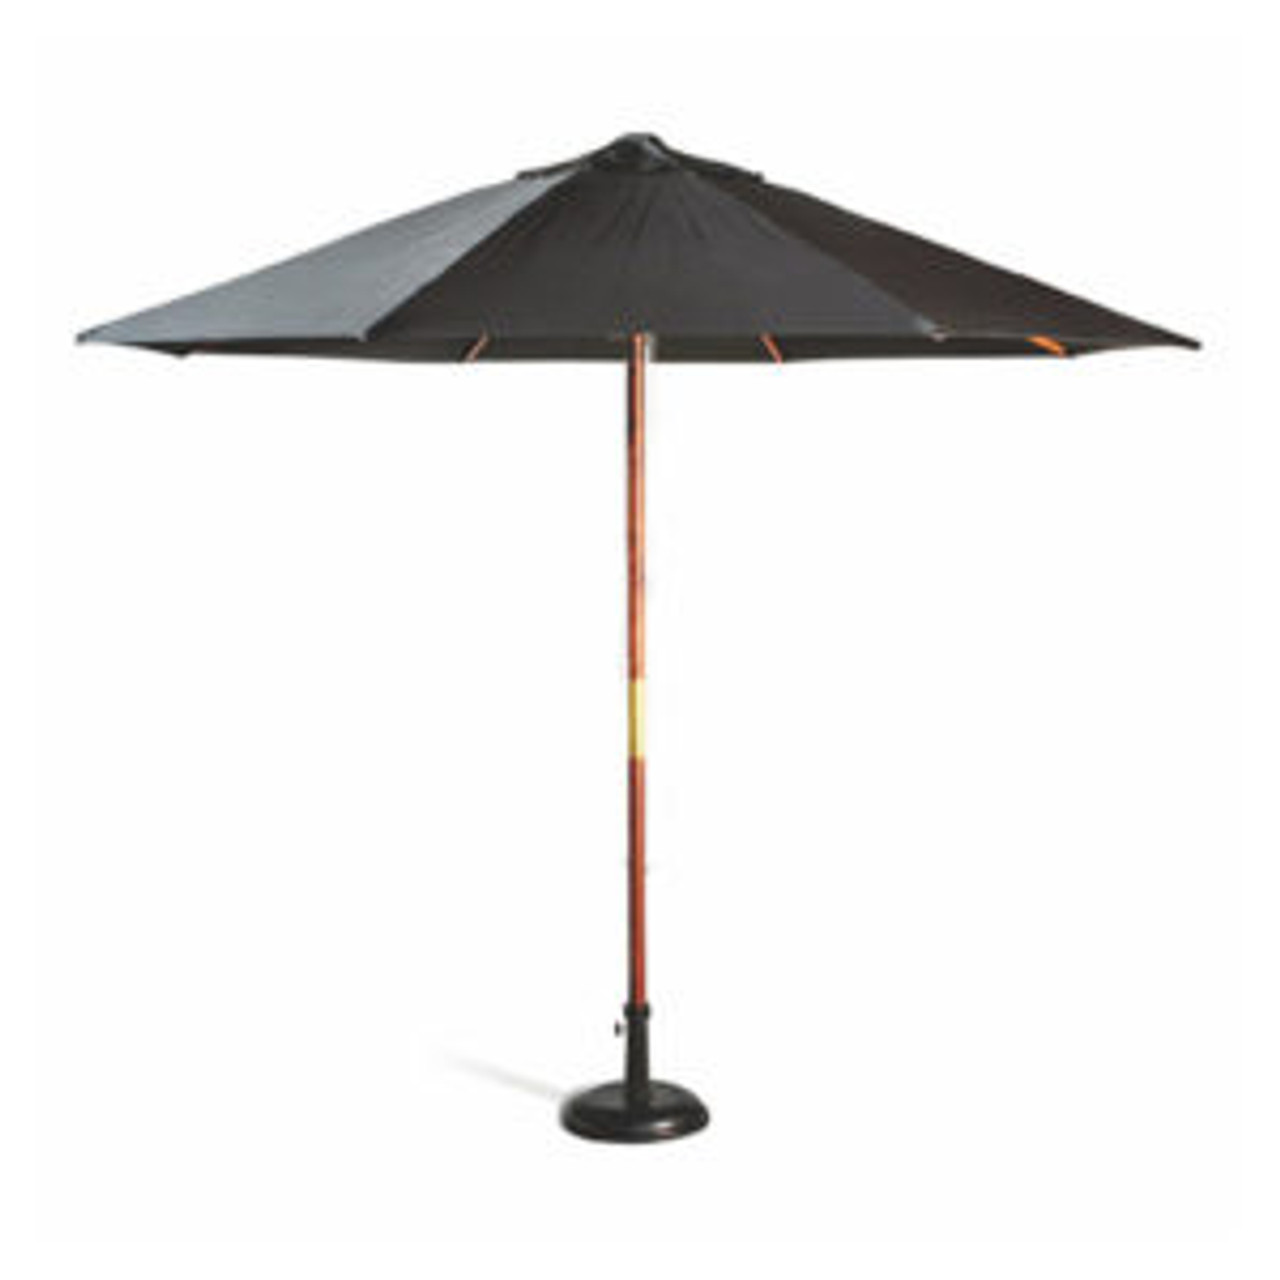 2.5m Market Umbrella - Wooden Frame with  Olefin Shade